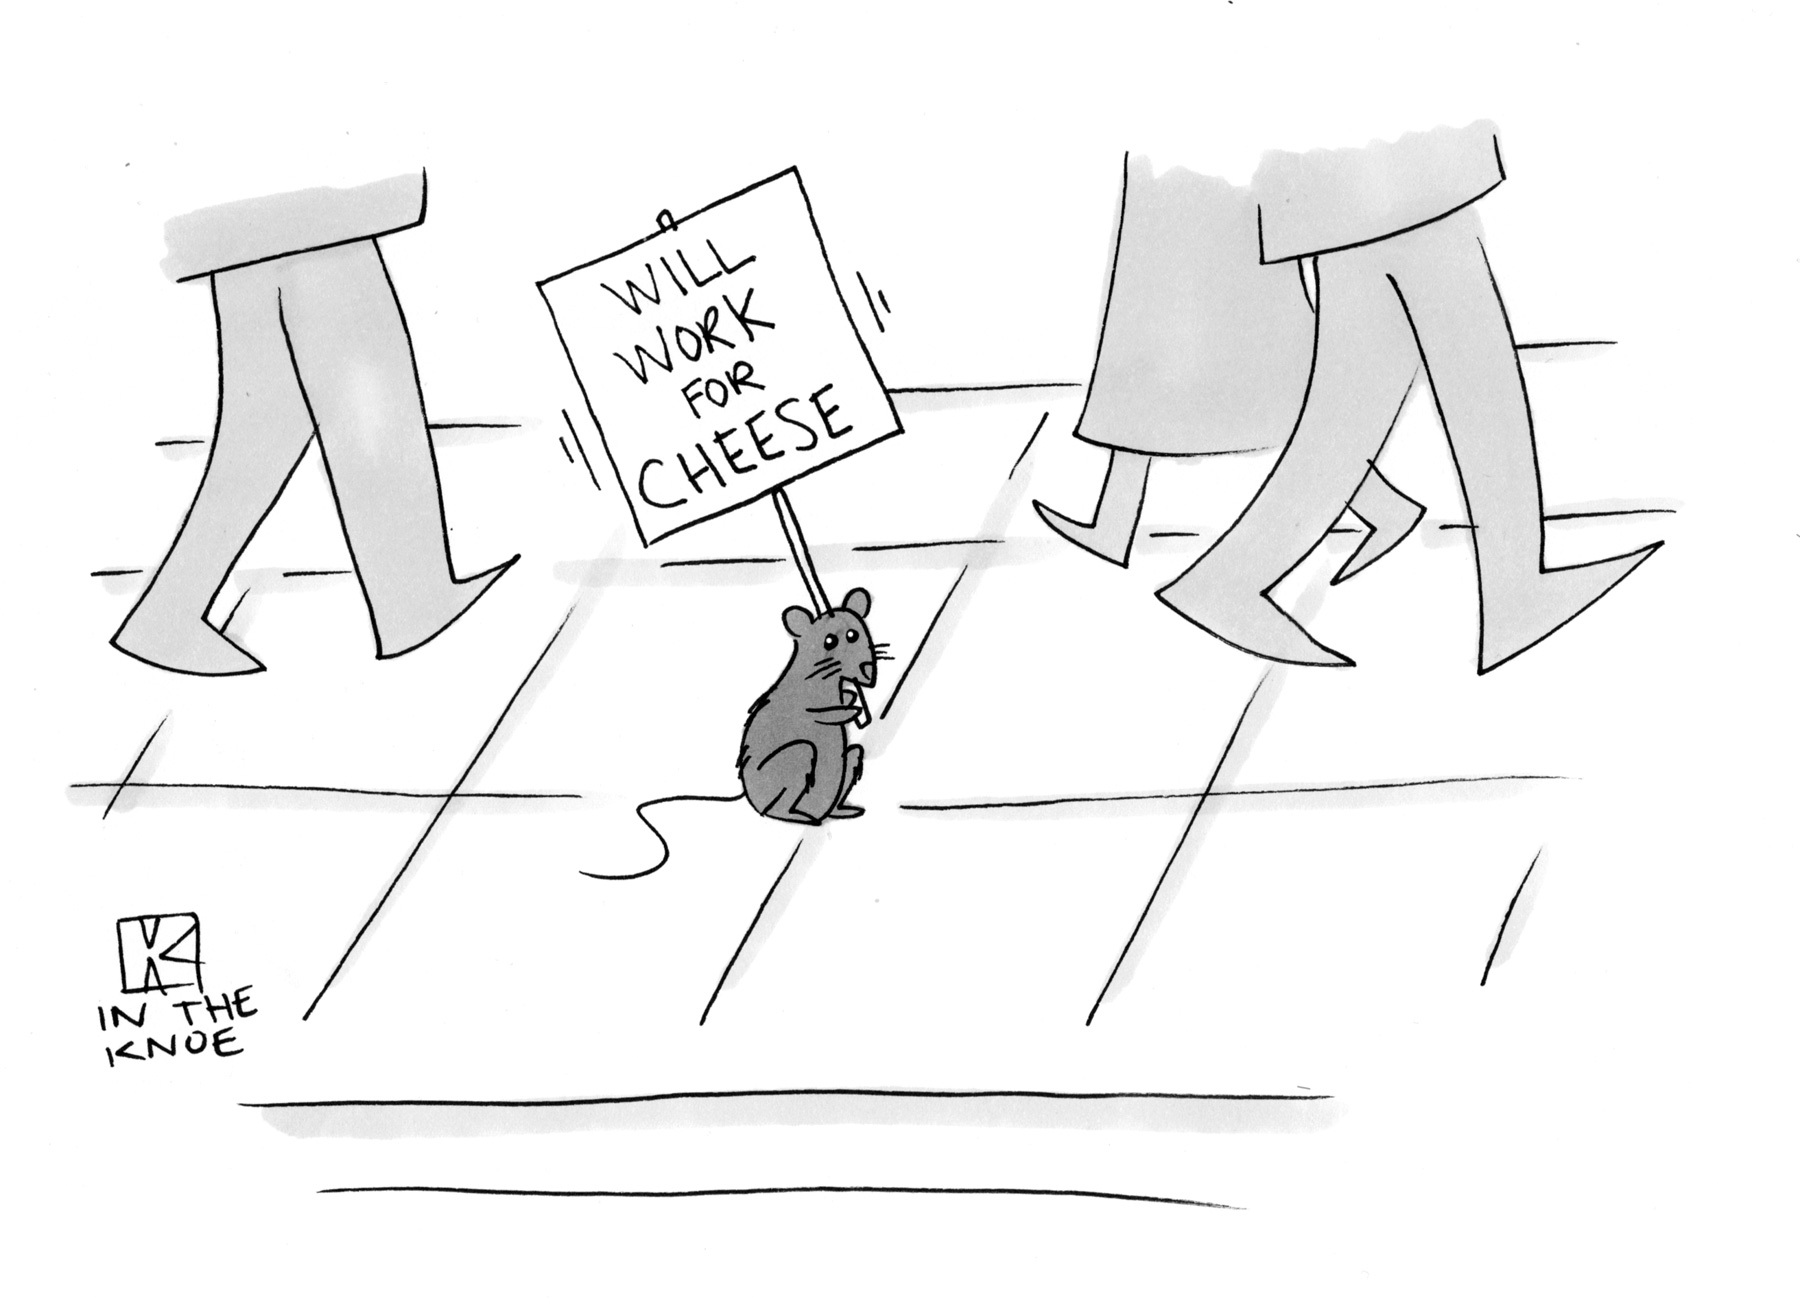 (Mouse is standing on a sidewalk, holding sign: 'Will work for cheese.'')